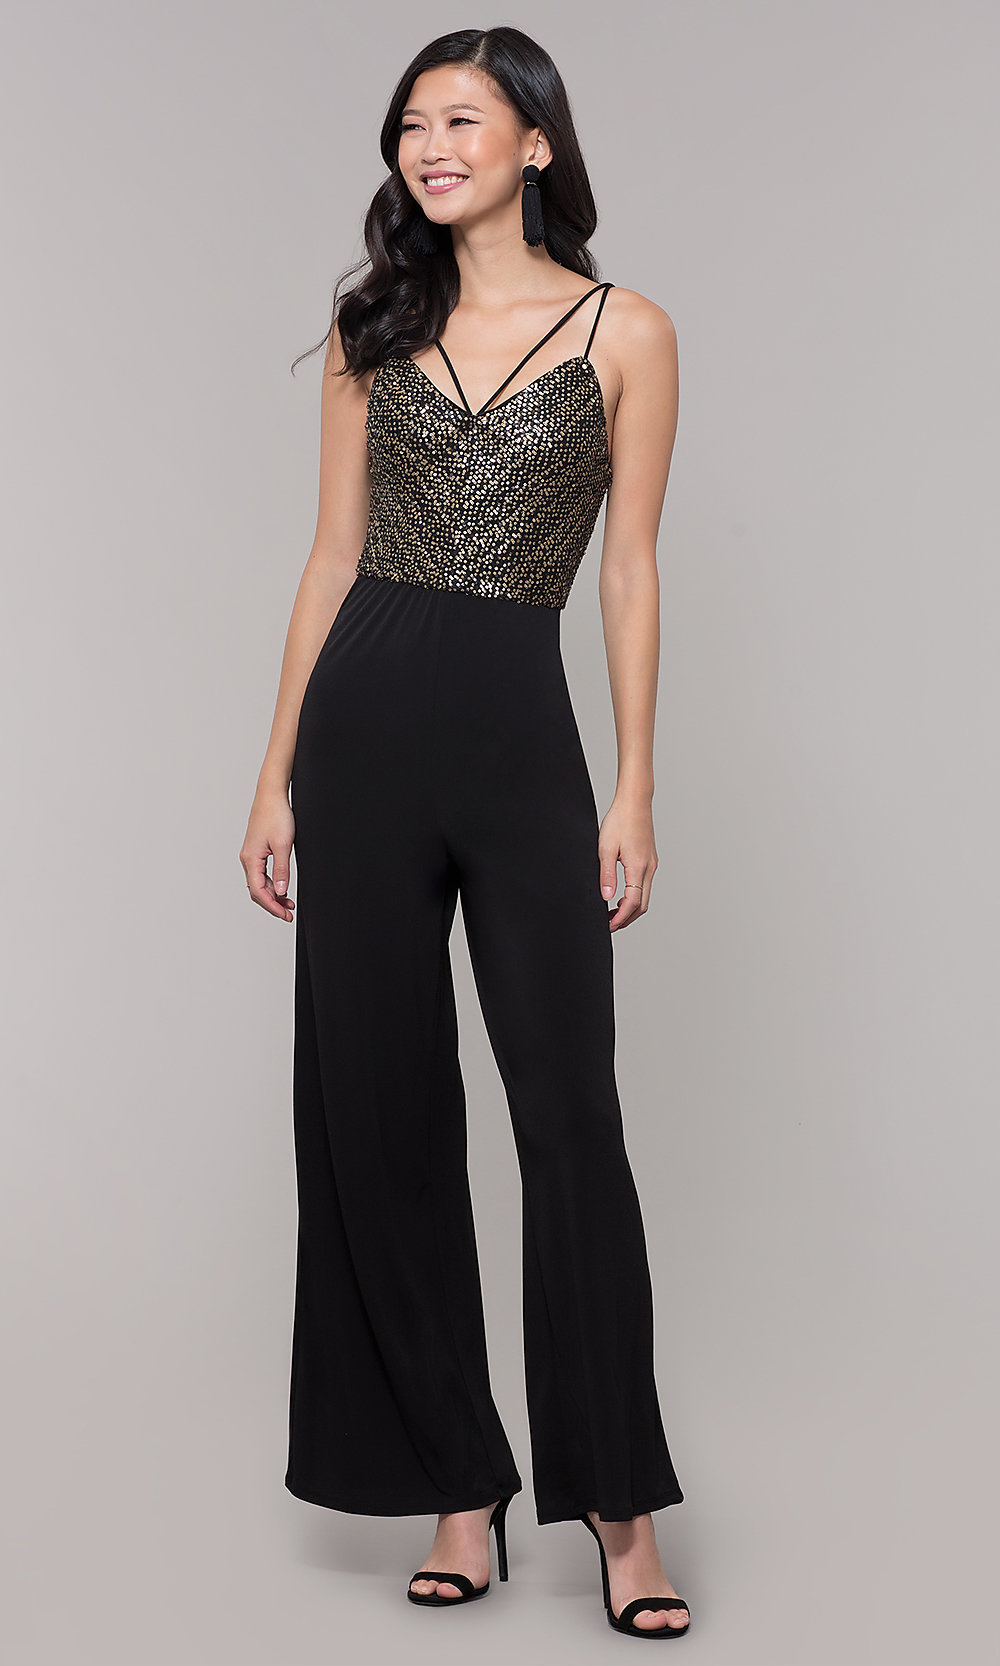 Black And Gold Semi Formal Holiday Jumpsuit Promgirl